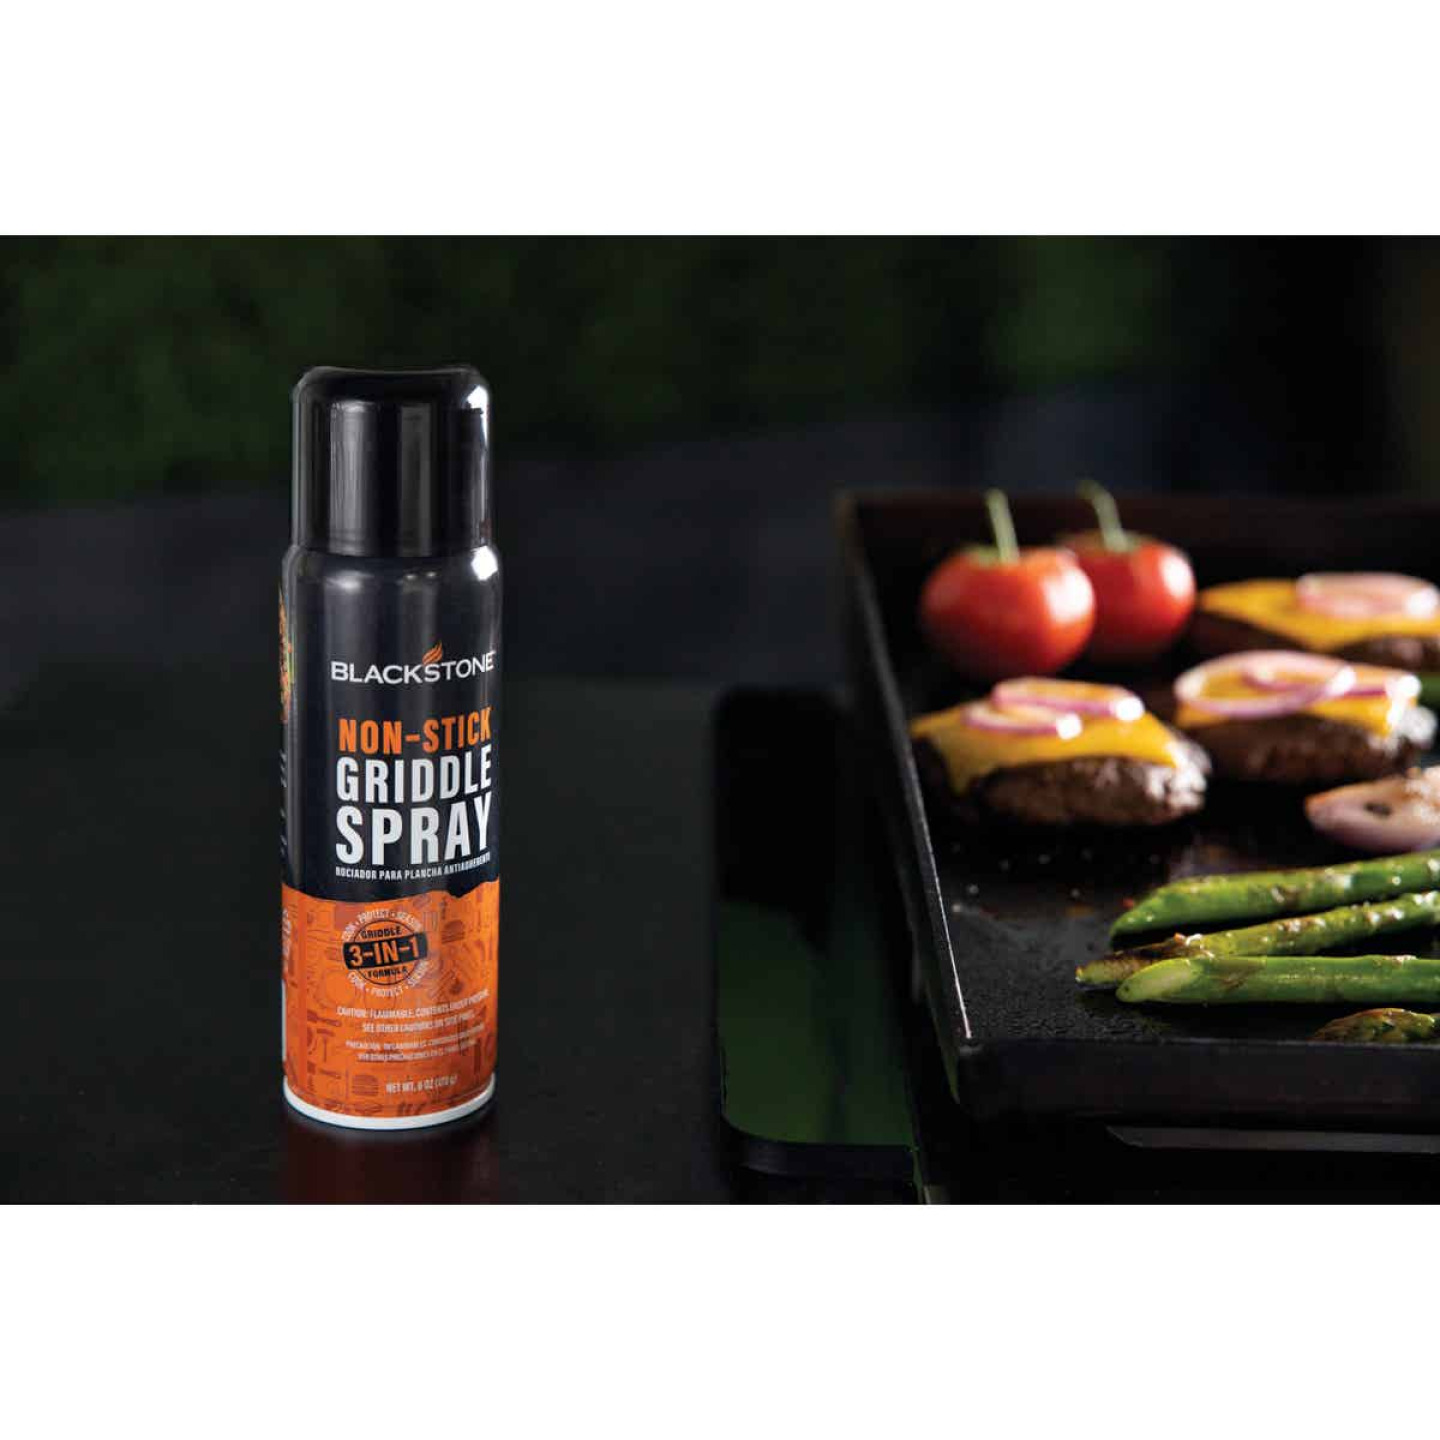 Blackstone 6 Oz. Griddle Aerosol Spray Image 2